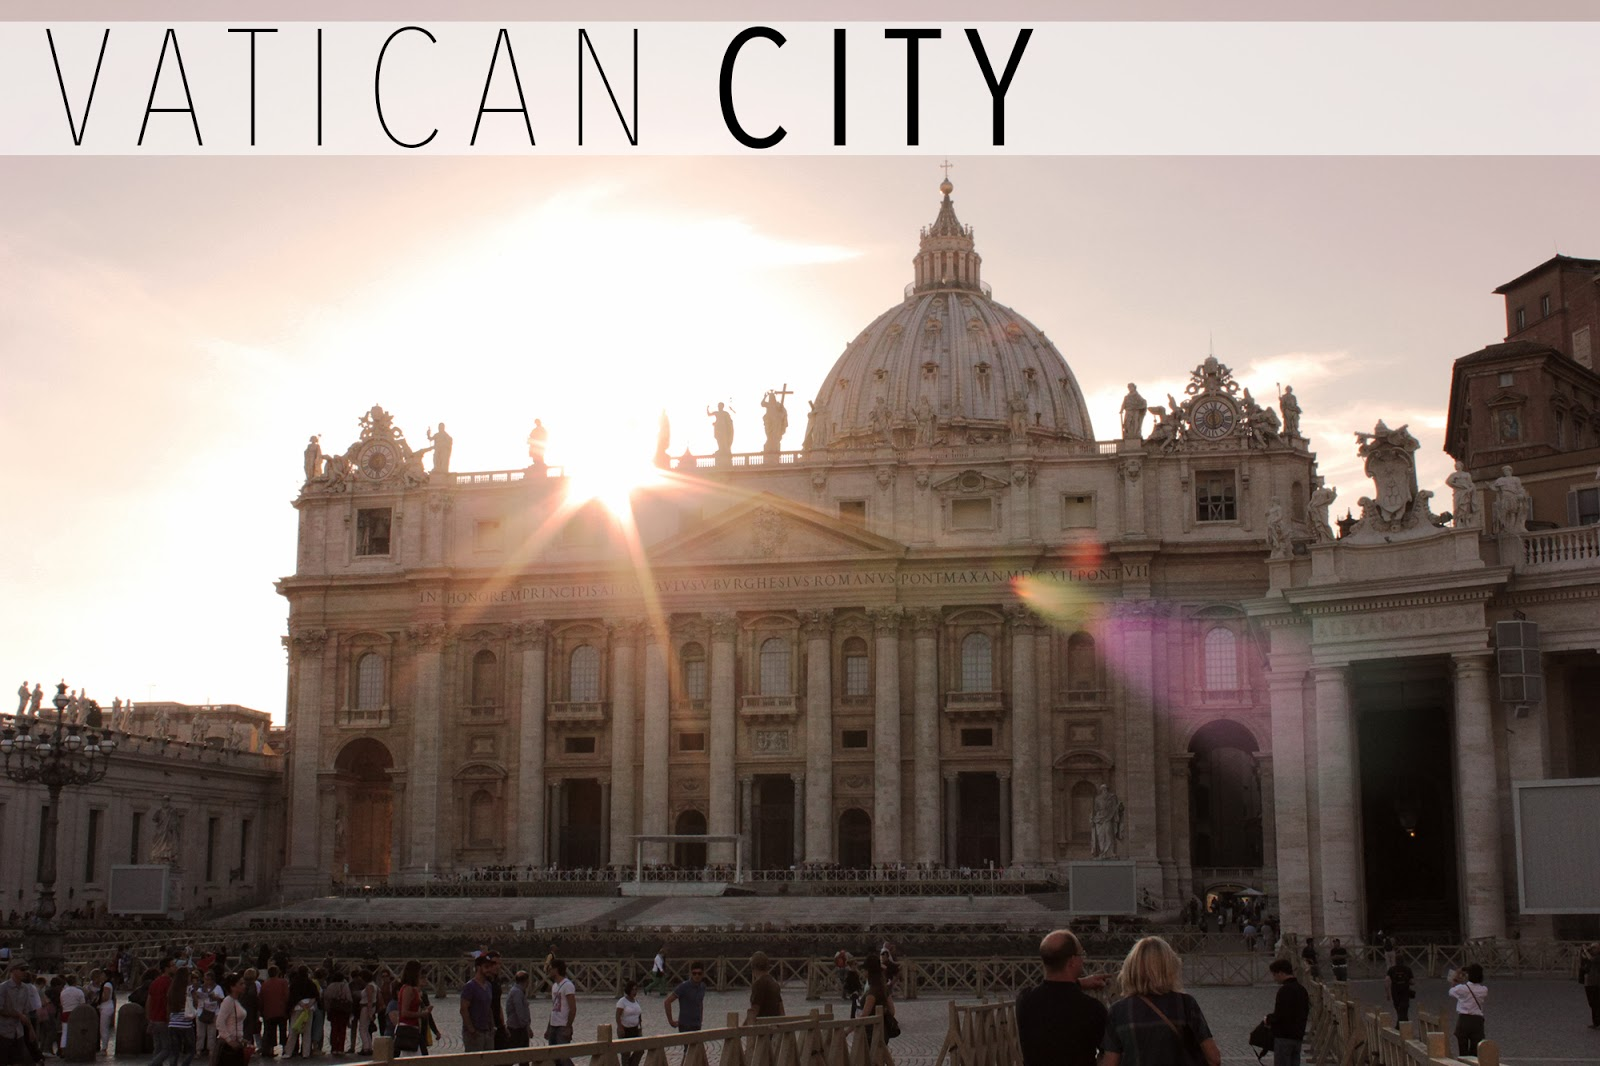 St Peter's Basilica, Vatican City in Italy